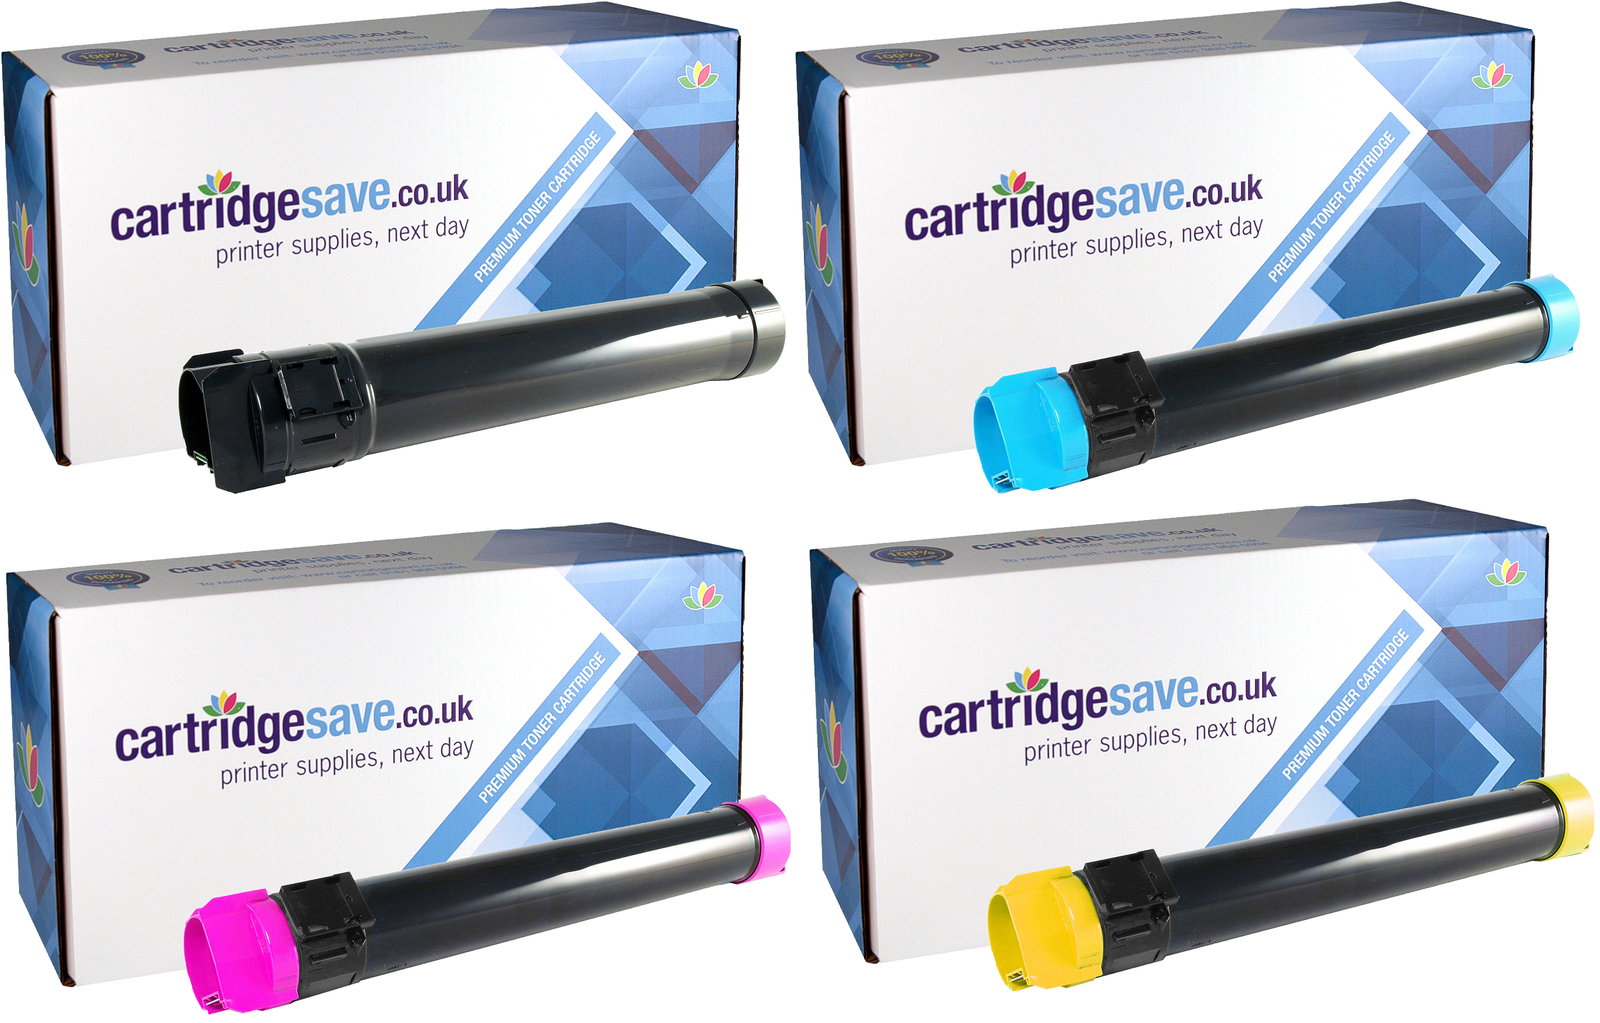 Compatible Extra High Capacity 4 Colour Lexmark C950X2 Toner Cartridge Multipack - (C950X2KG/CG/MG/YG)